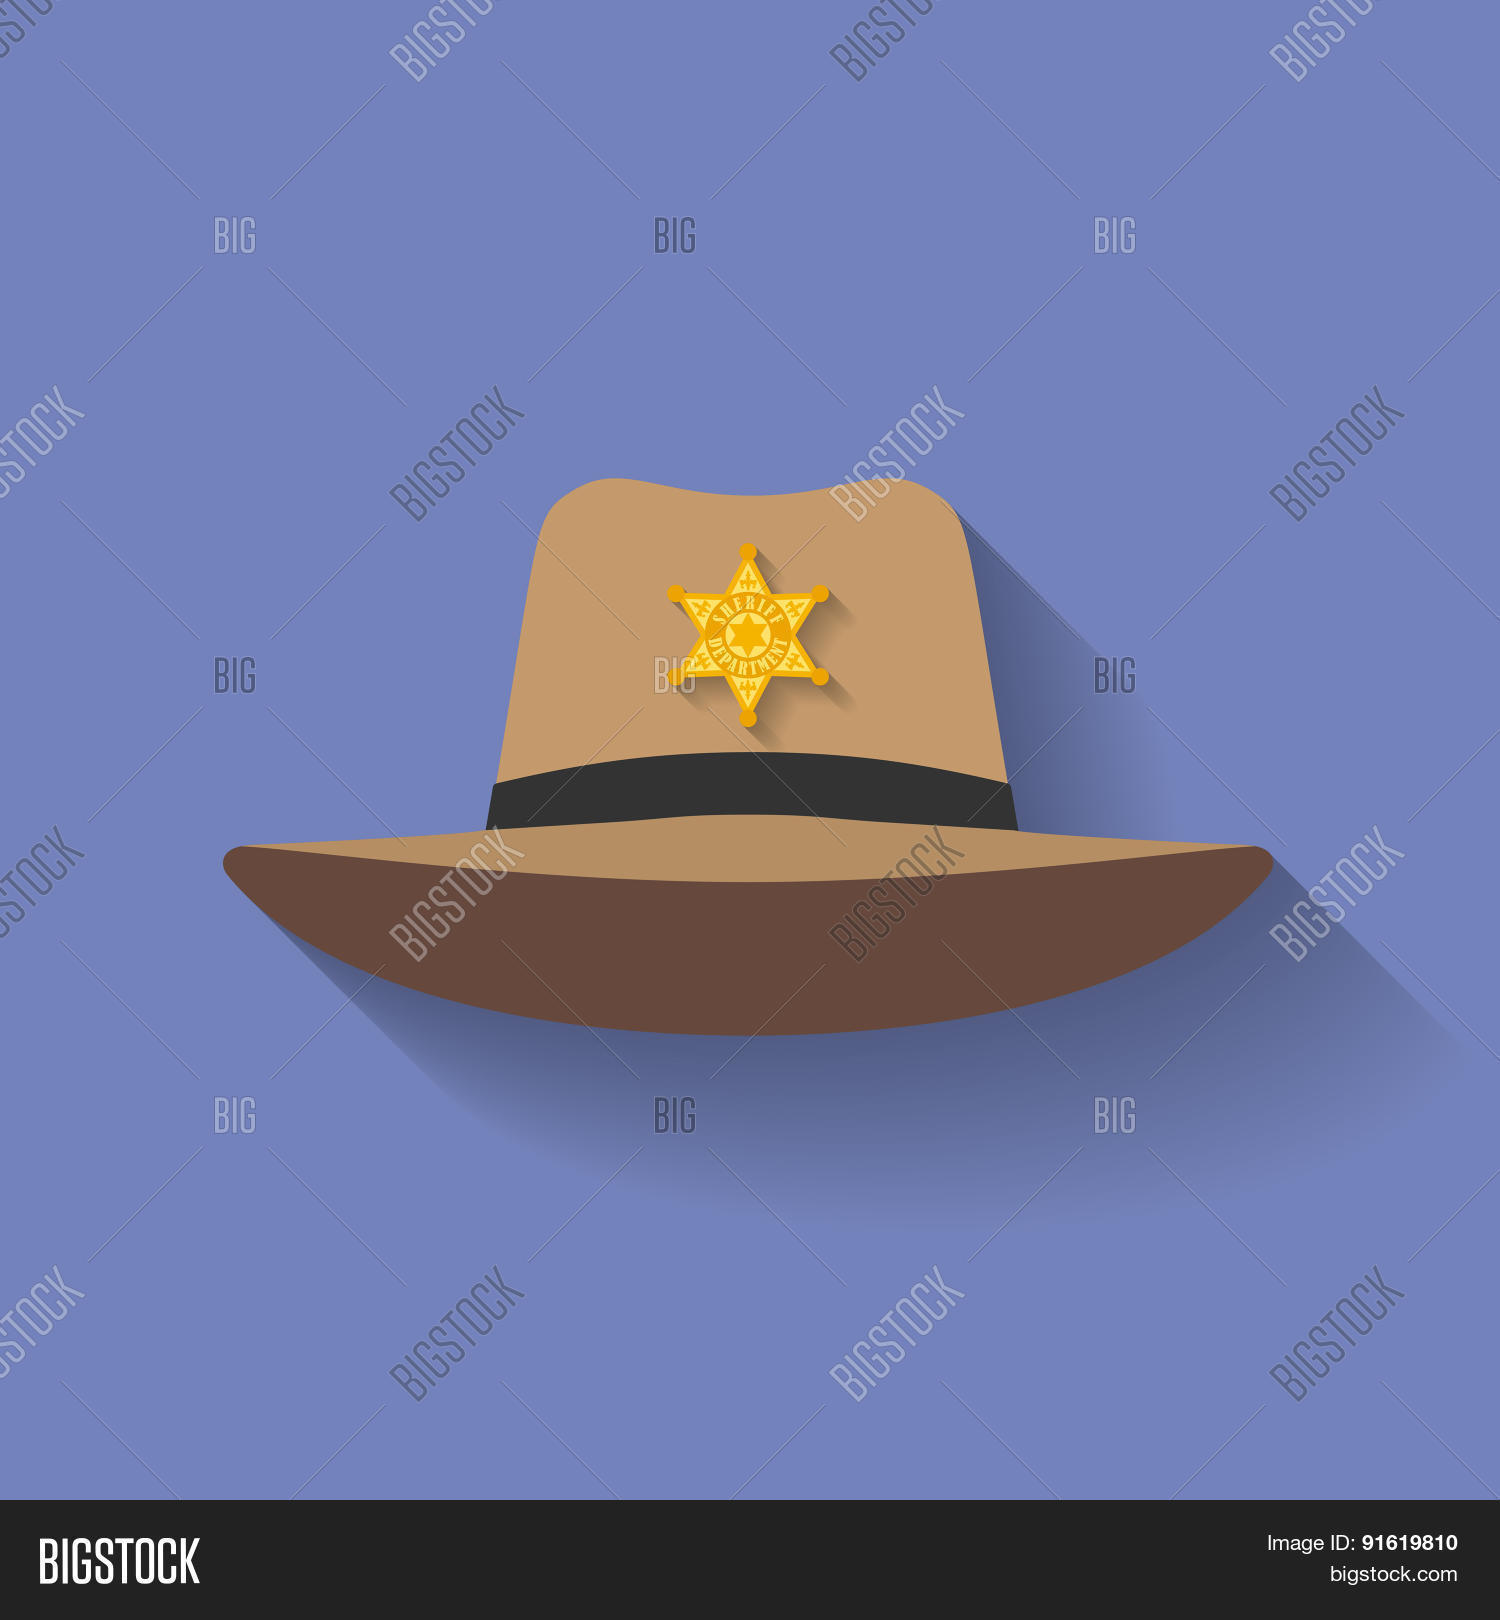 801acedfb98 Icon of Sheriff hat